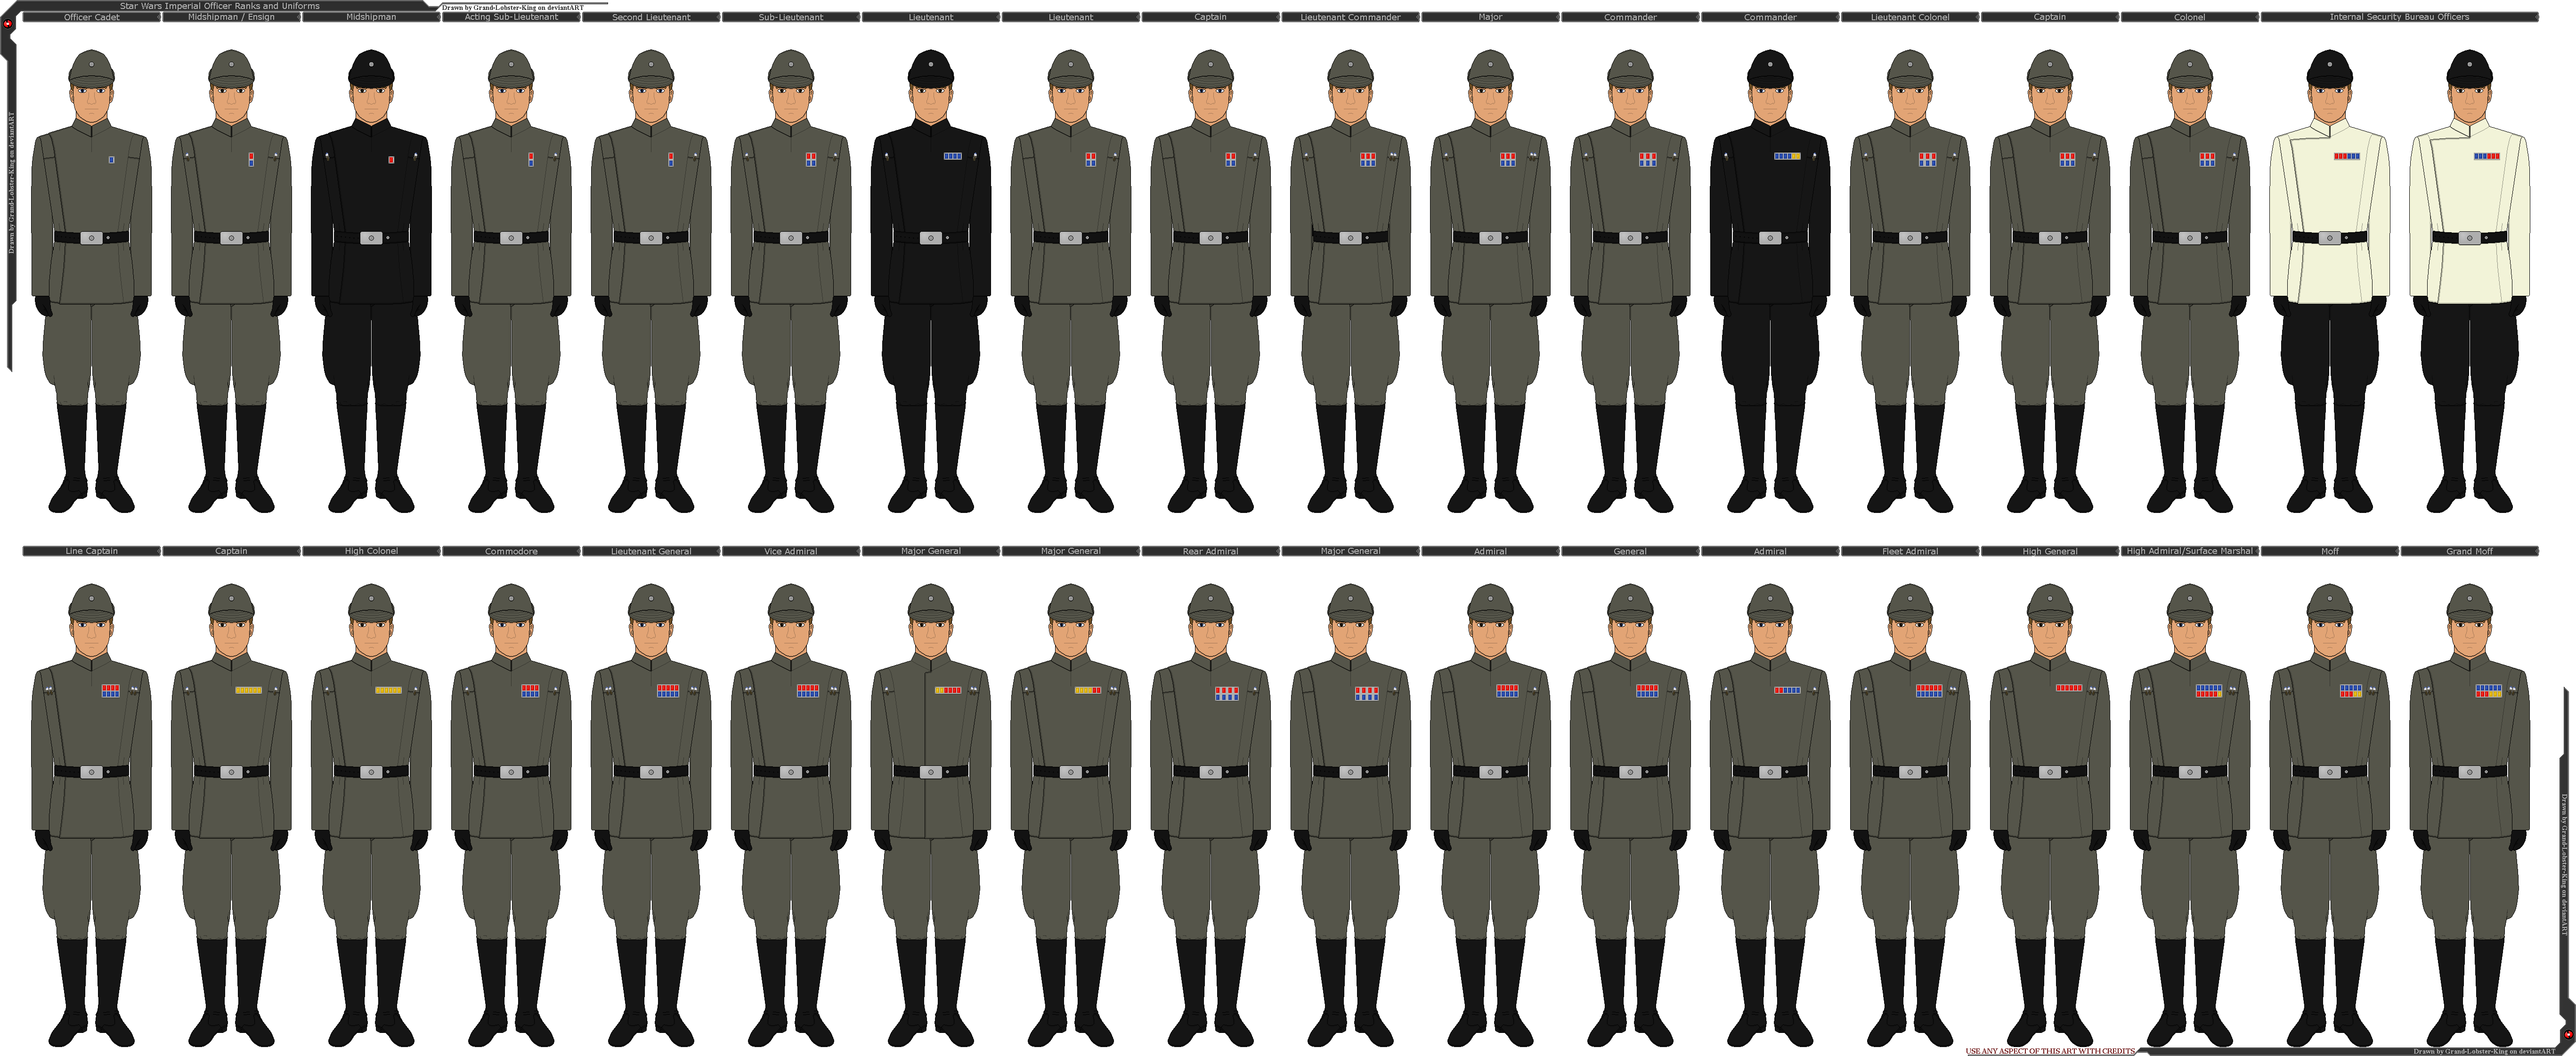 Star Wars - Imperial Officer Ranks and Uniforms by Grand-Lobster-King on DeviantArt